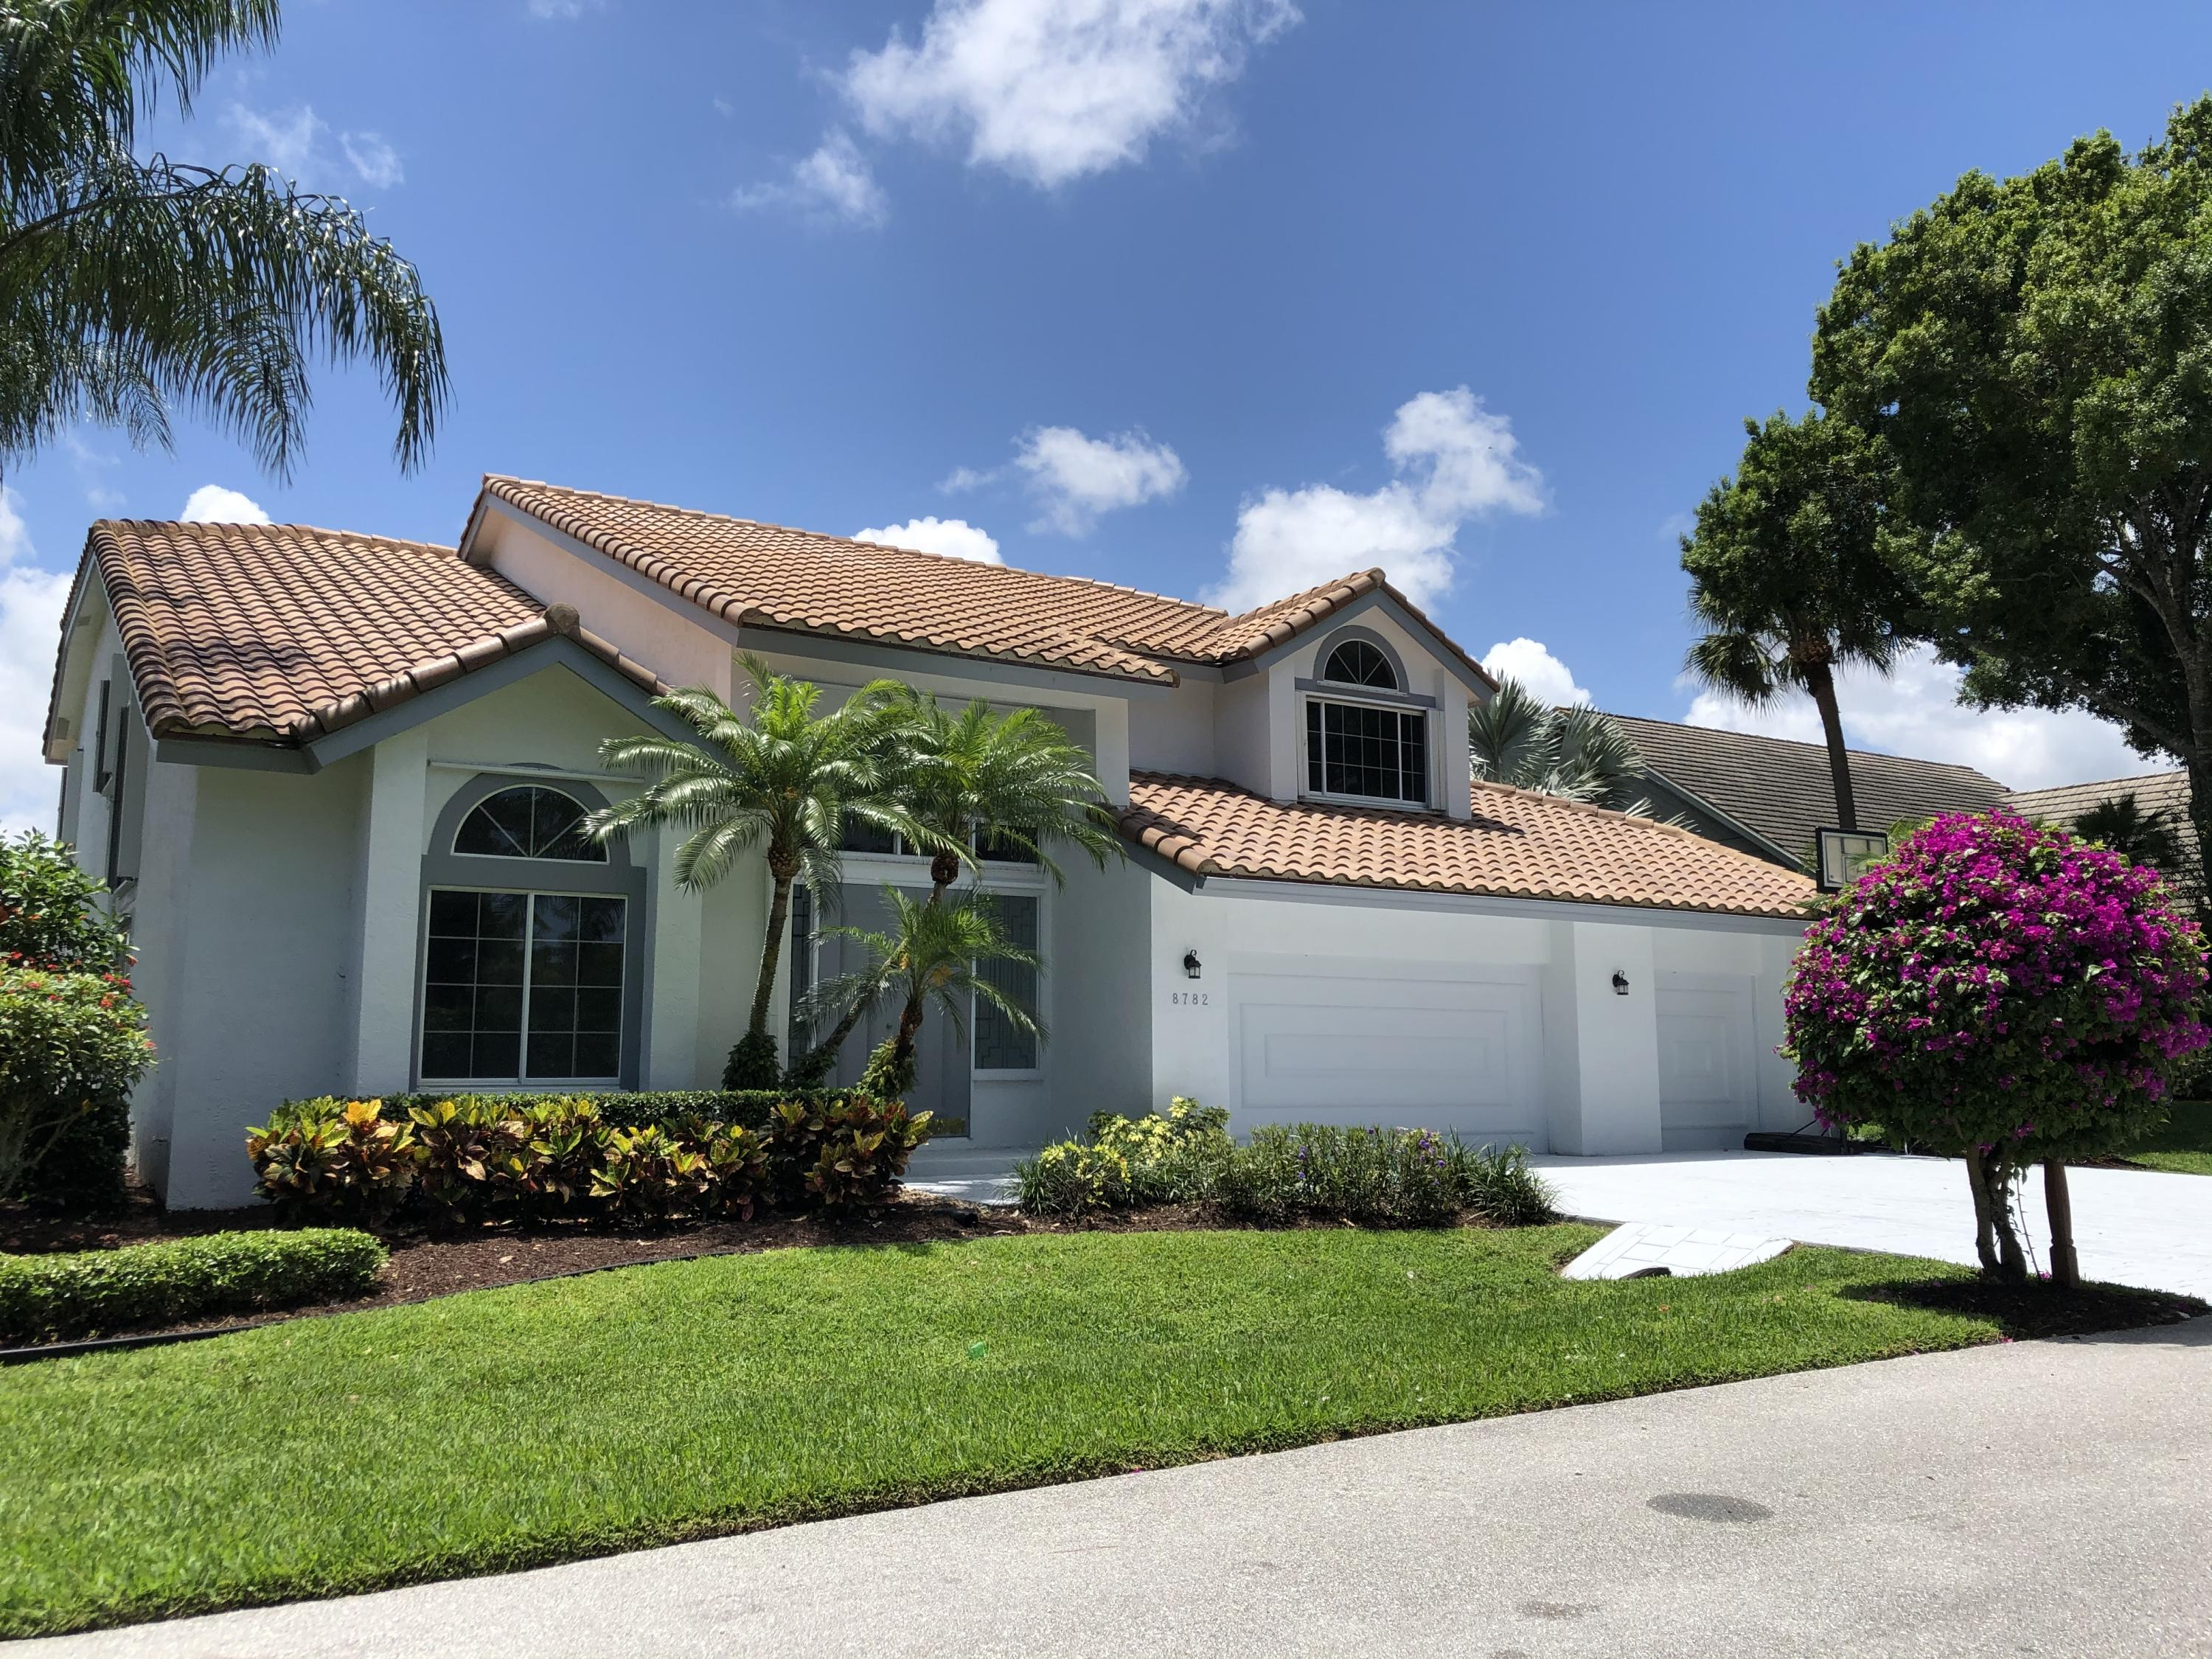 One of Tequesta 5 Bedroom Homes for Sale at 8782 SE North Passage Way